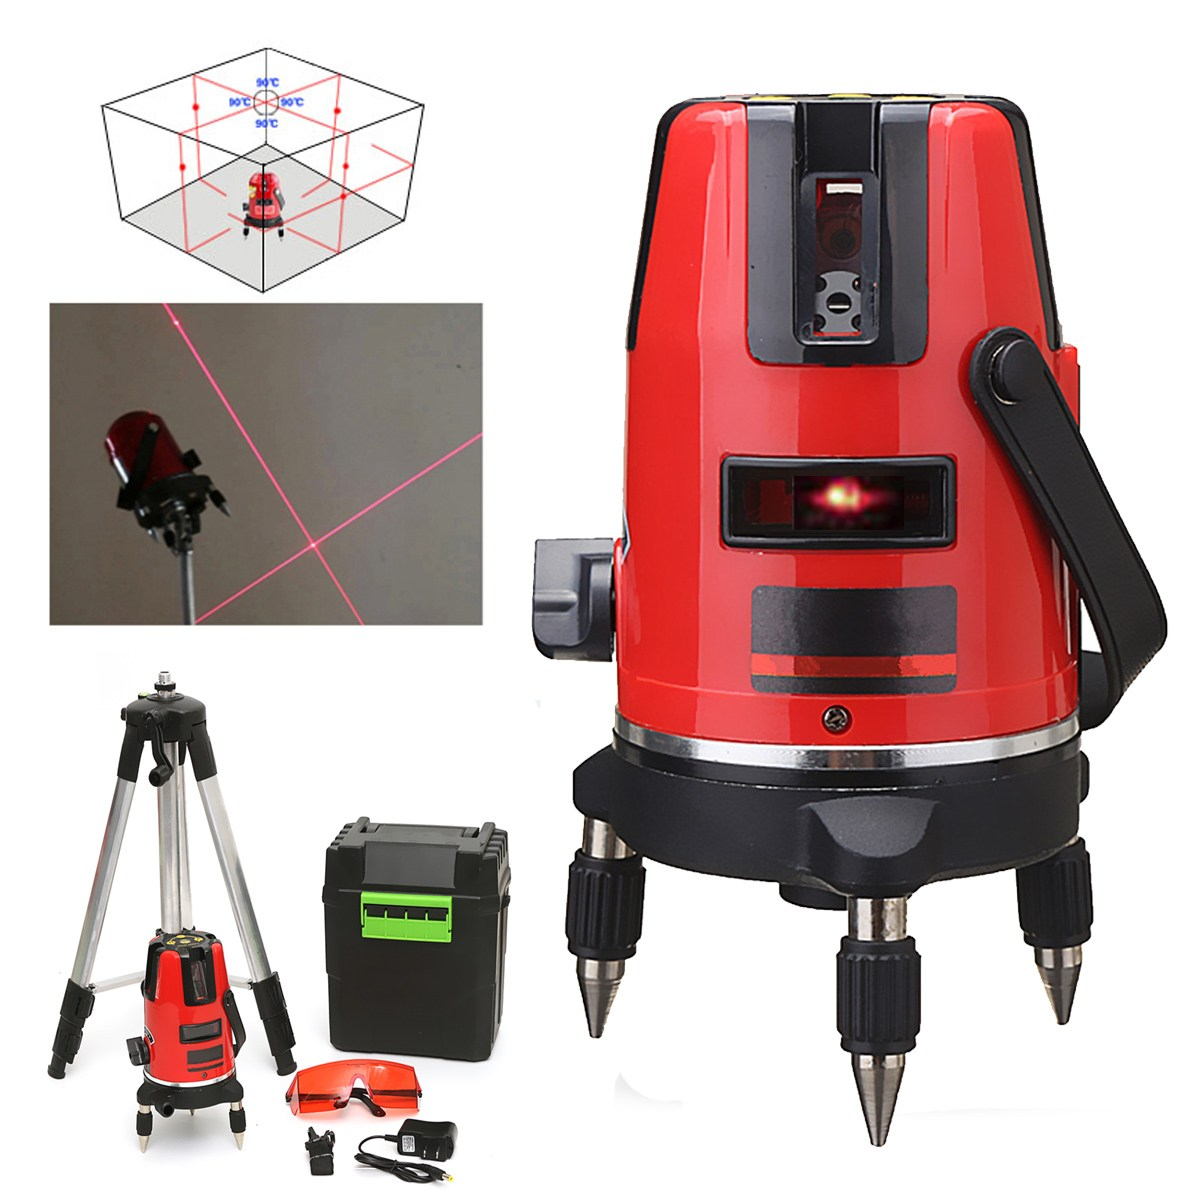 New 5 Line 6 Point Cross Line Red Automatic Self Leveling 360 degree Rotary Laser Level Meter Measure + Tripod